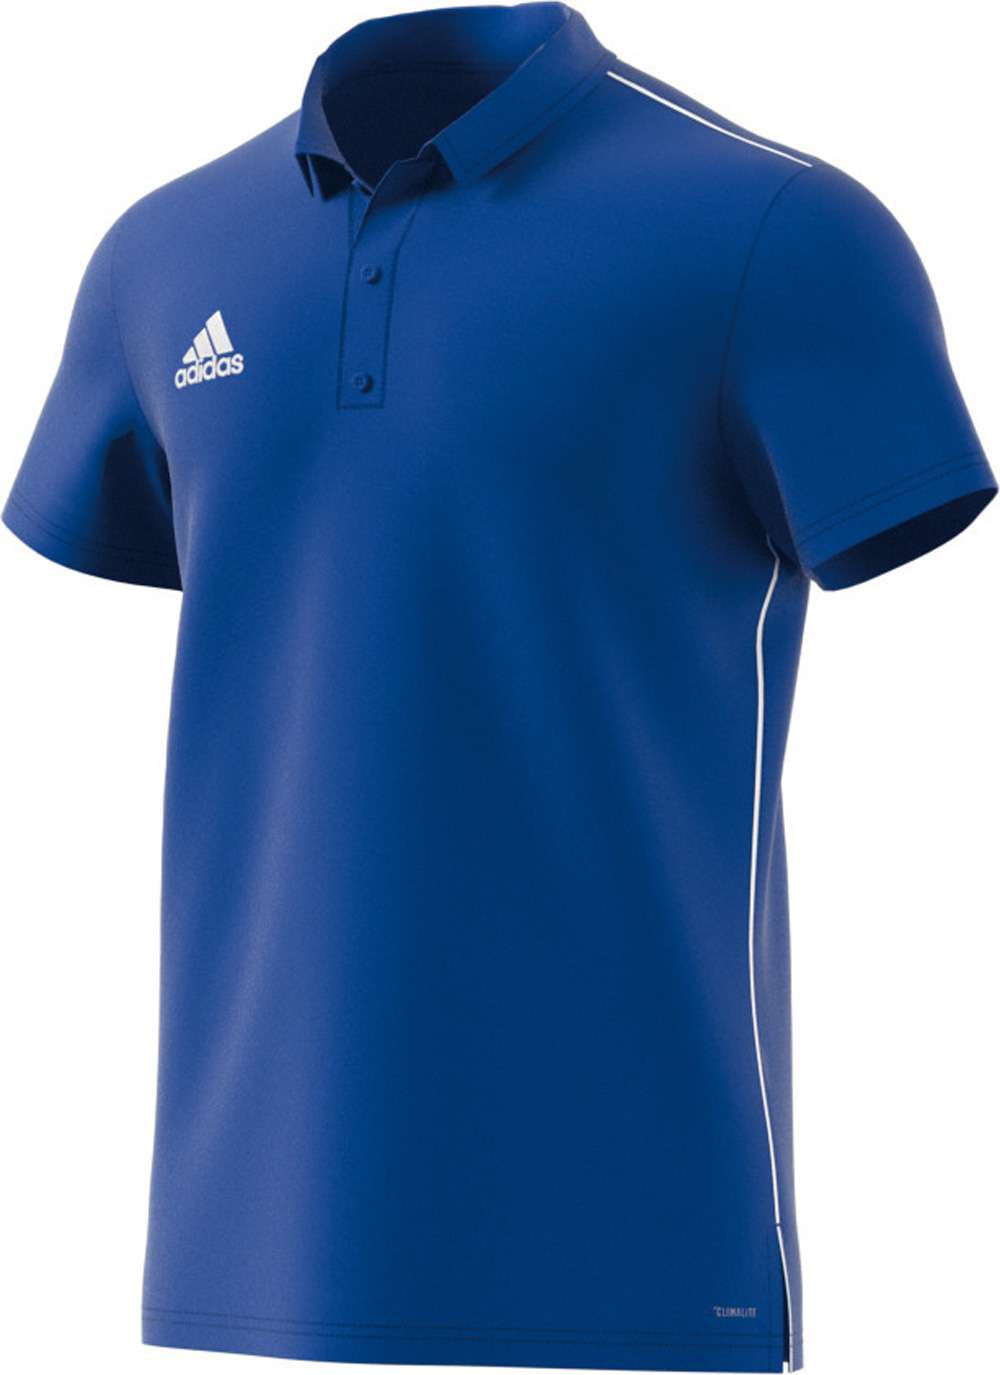 adidas Core 18 Climalite Polo - Herren (XS-3XL)   Sport 2000 TEAM -  Teamsport Online Shop 0744f7e6b9